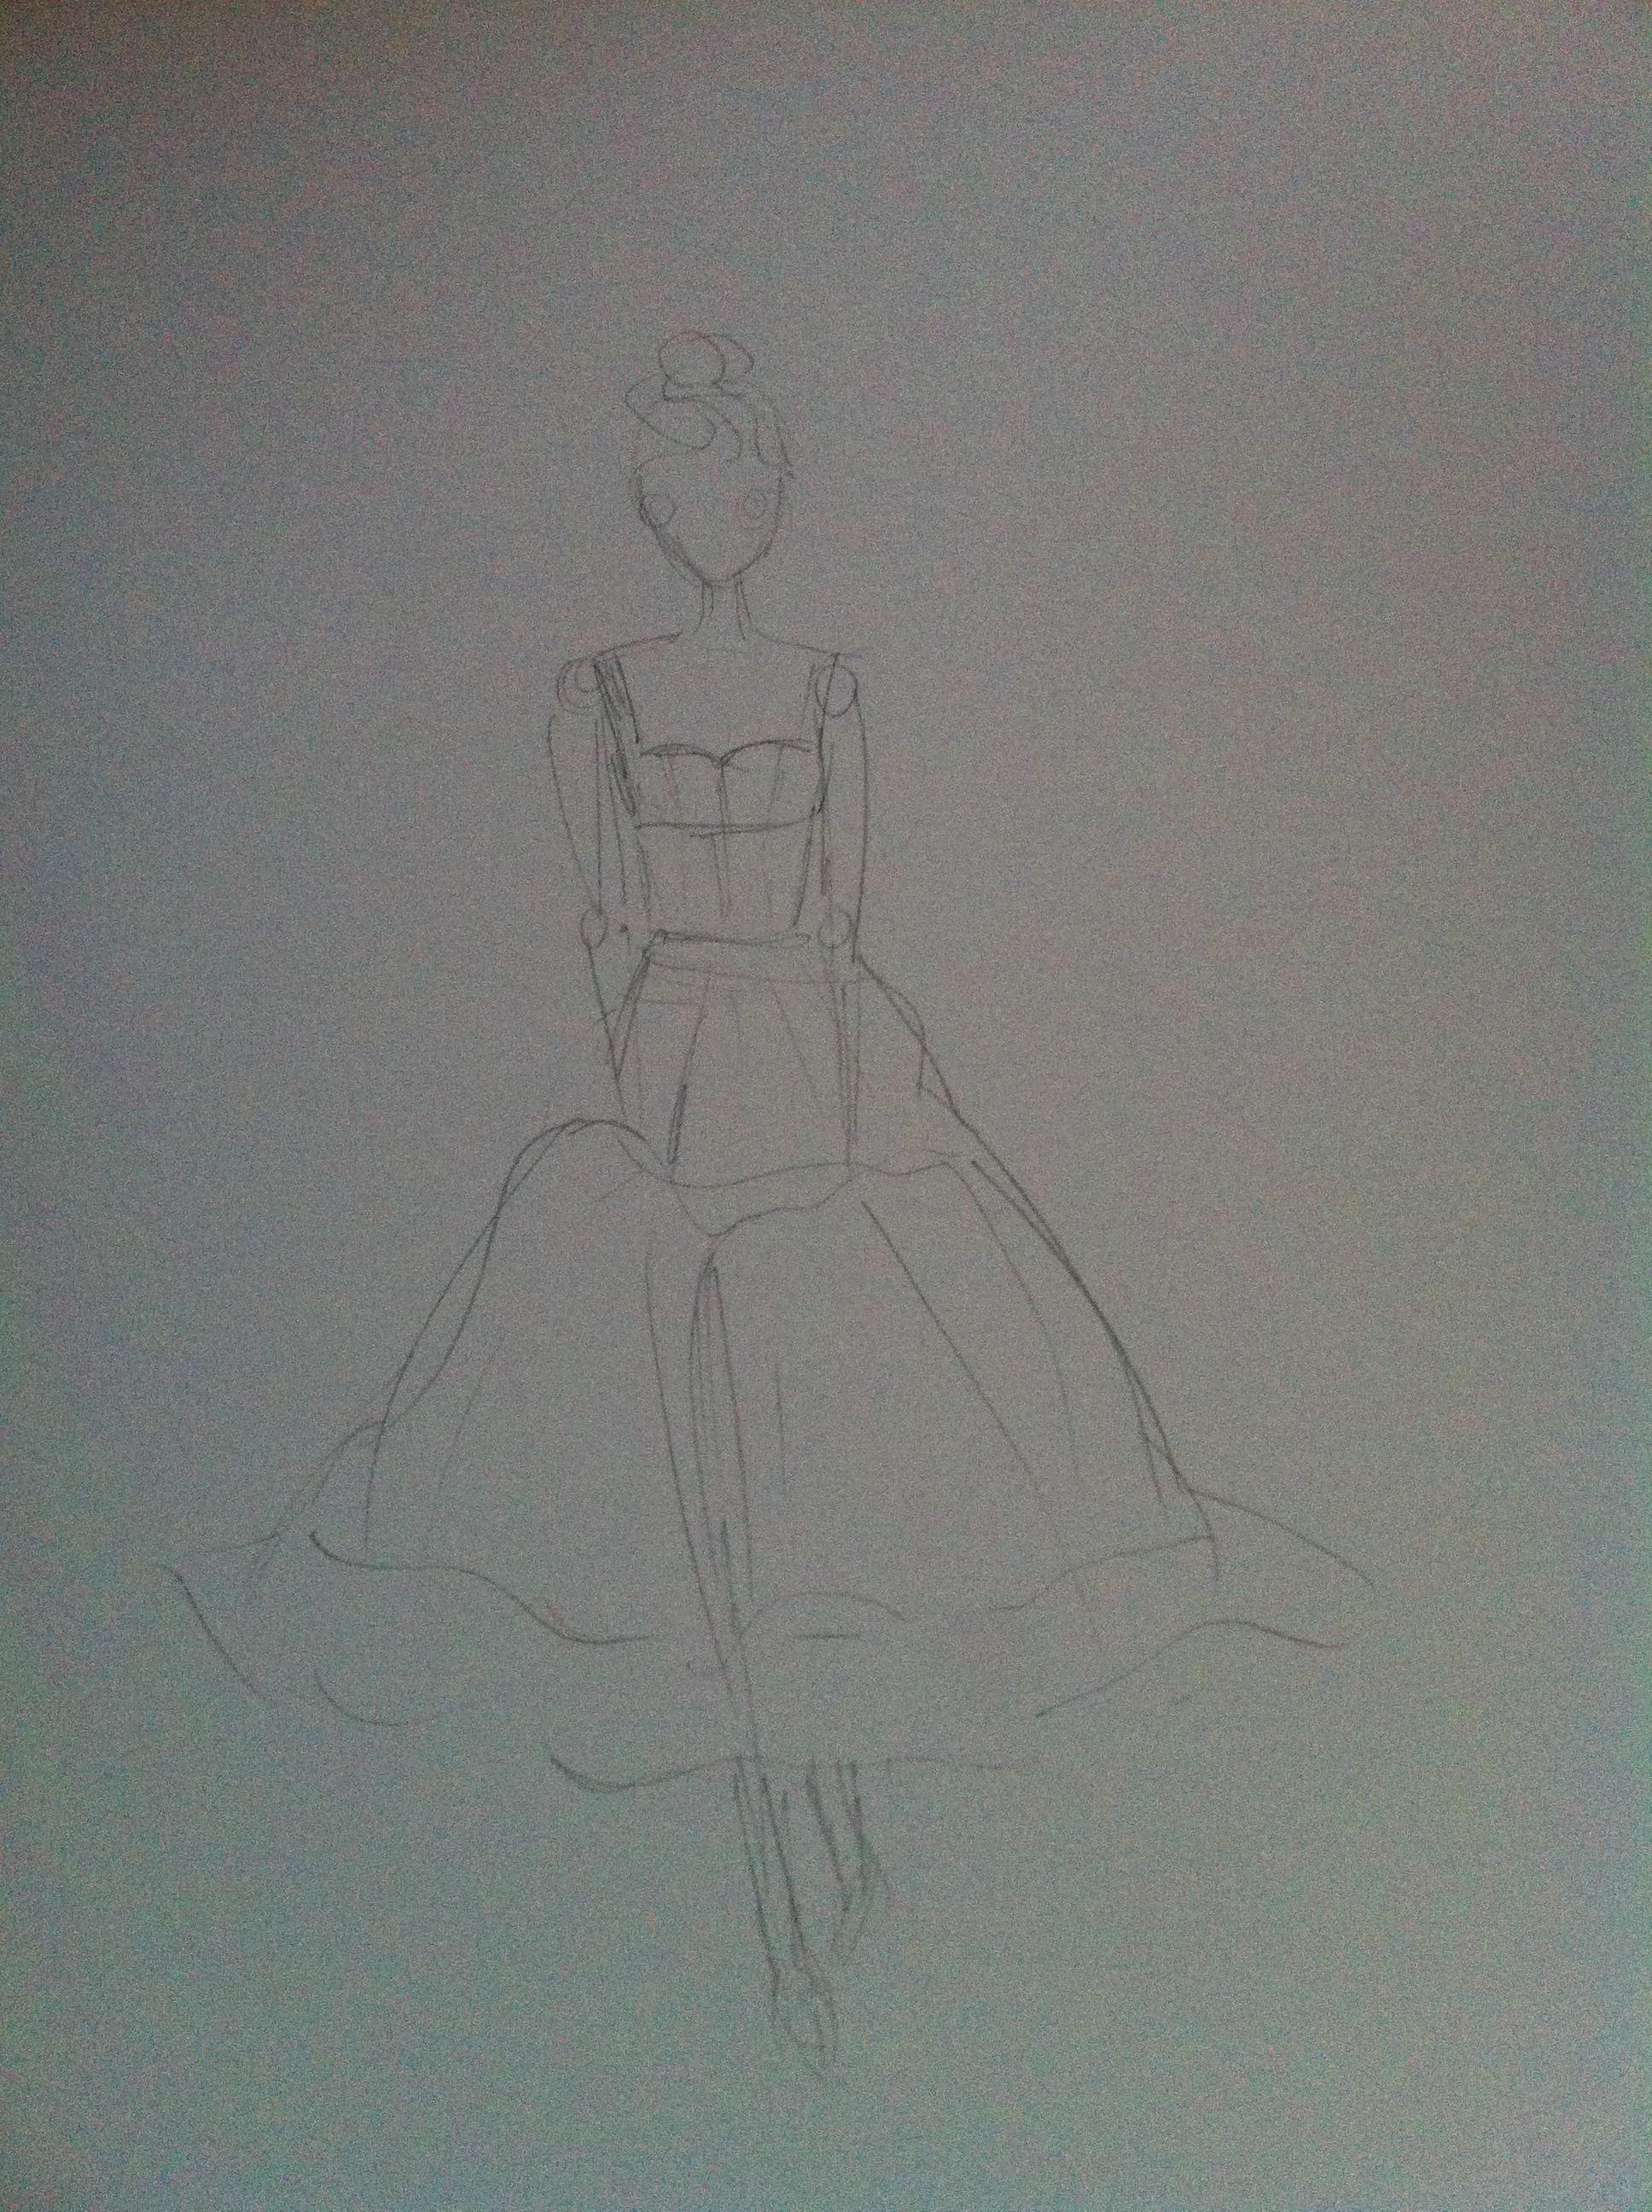 Sketches--Global Romanticism - image 18 - student project